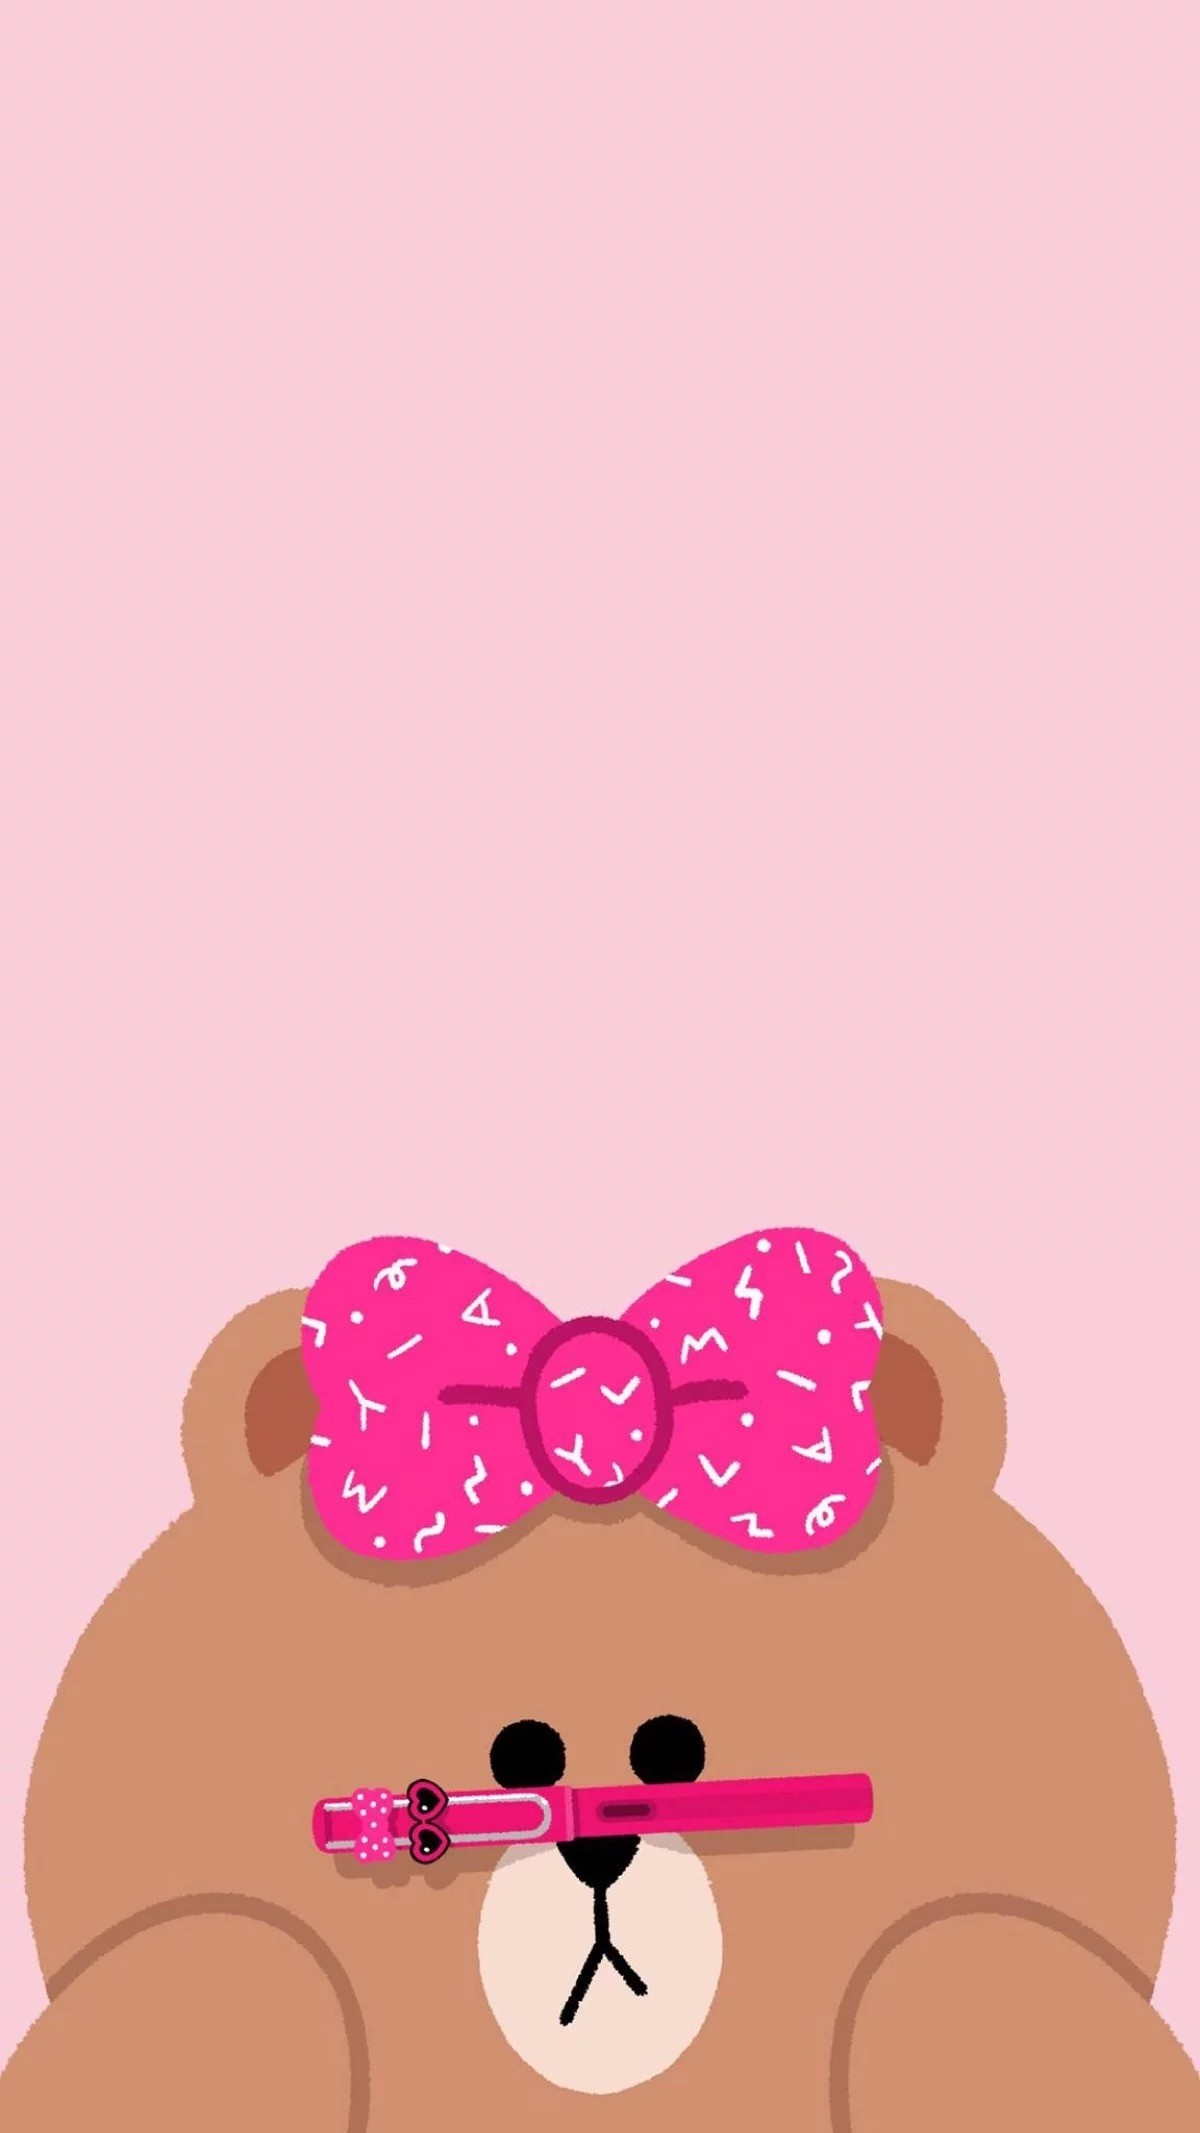 1200x2133 Pinkie Pie, Rilakkuma, Cartoon, Screen, Crafts, Funds. Wallpaper iPhone ⚪